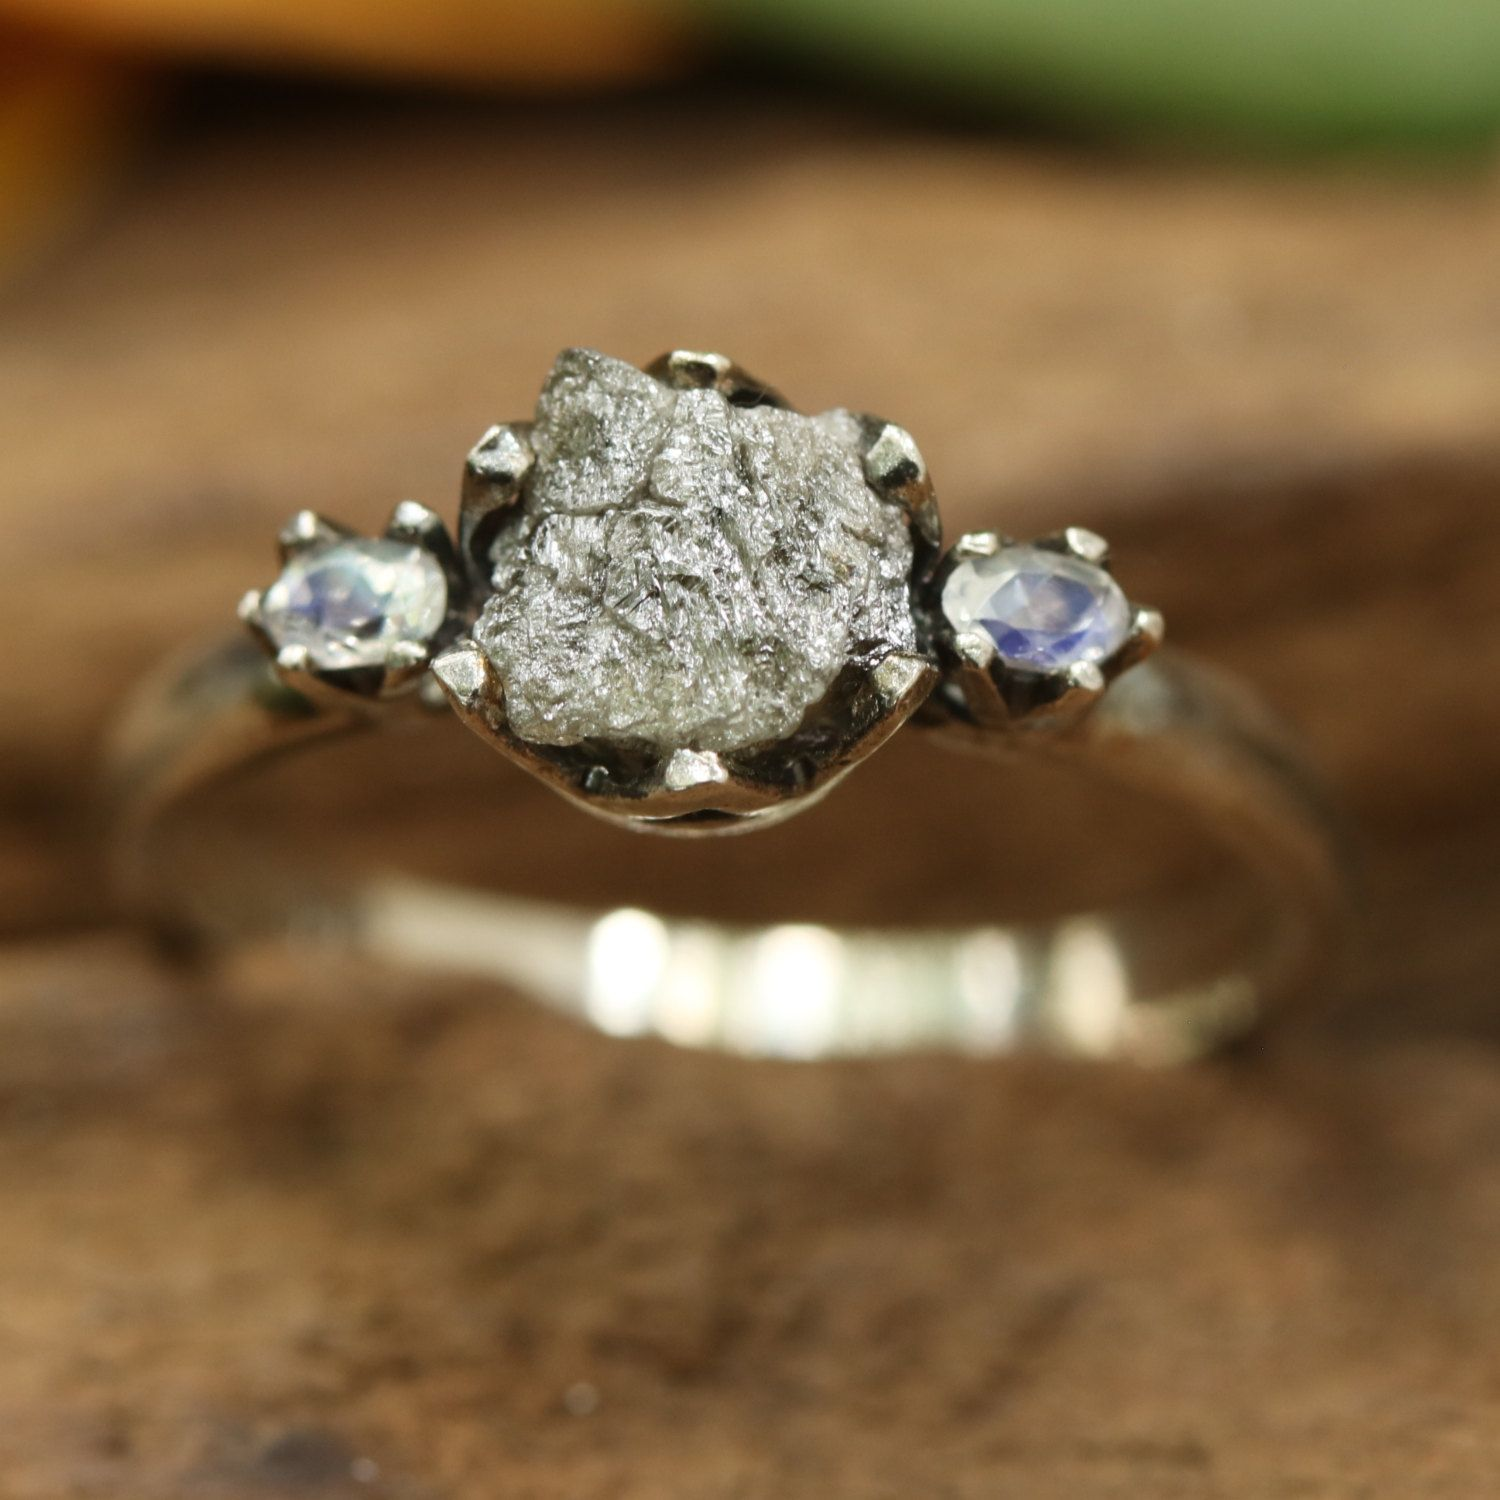 Natural rough diamond ring with tiny oval faceted moonstone side